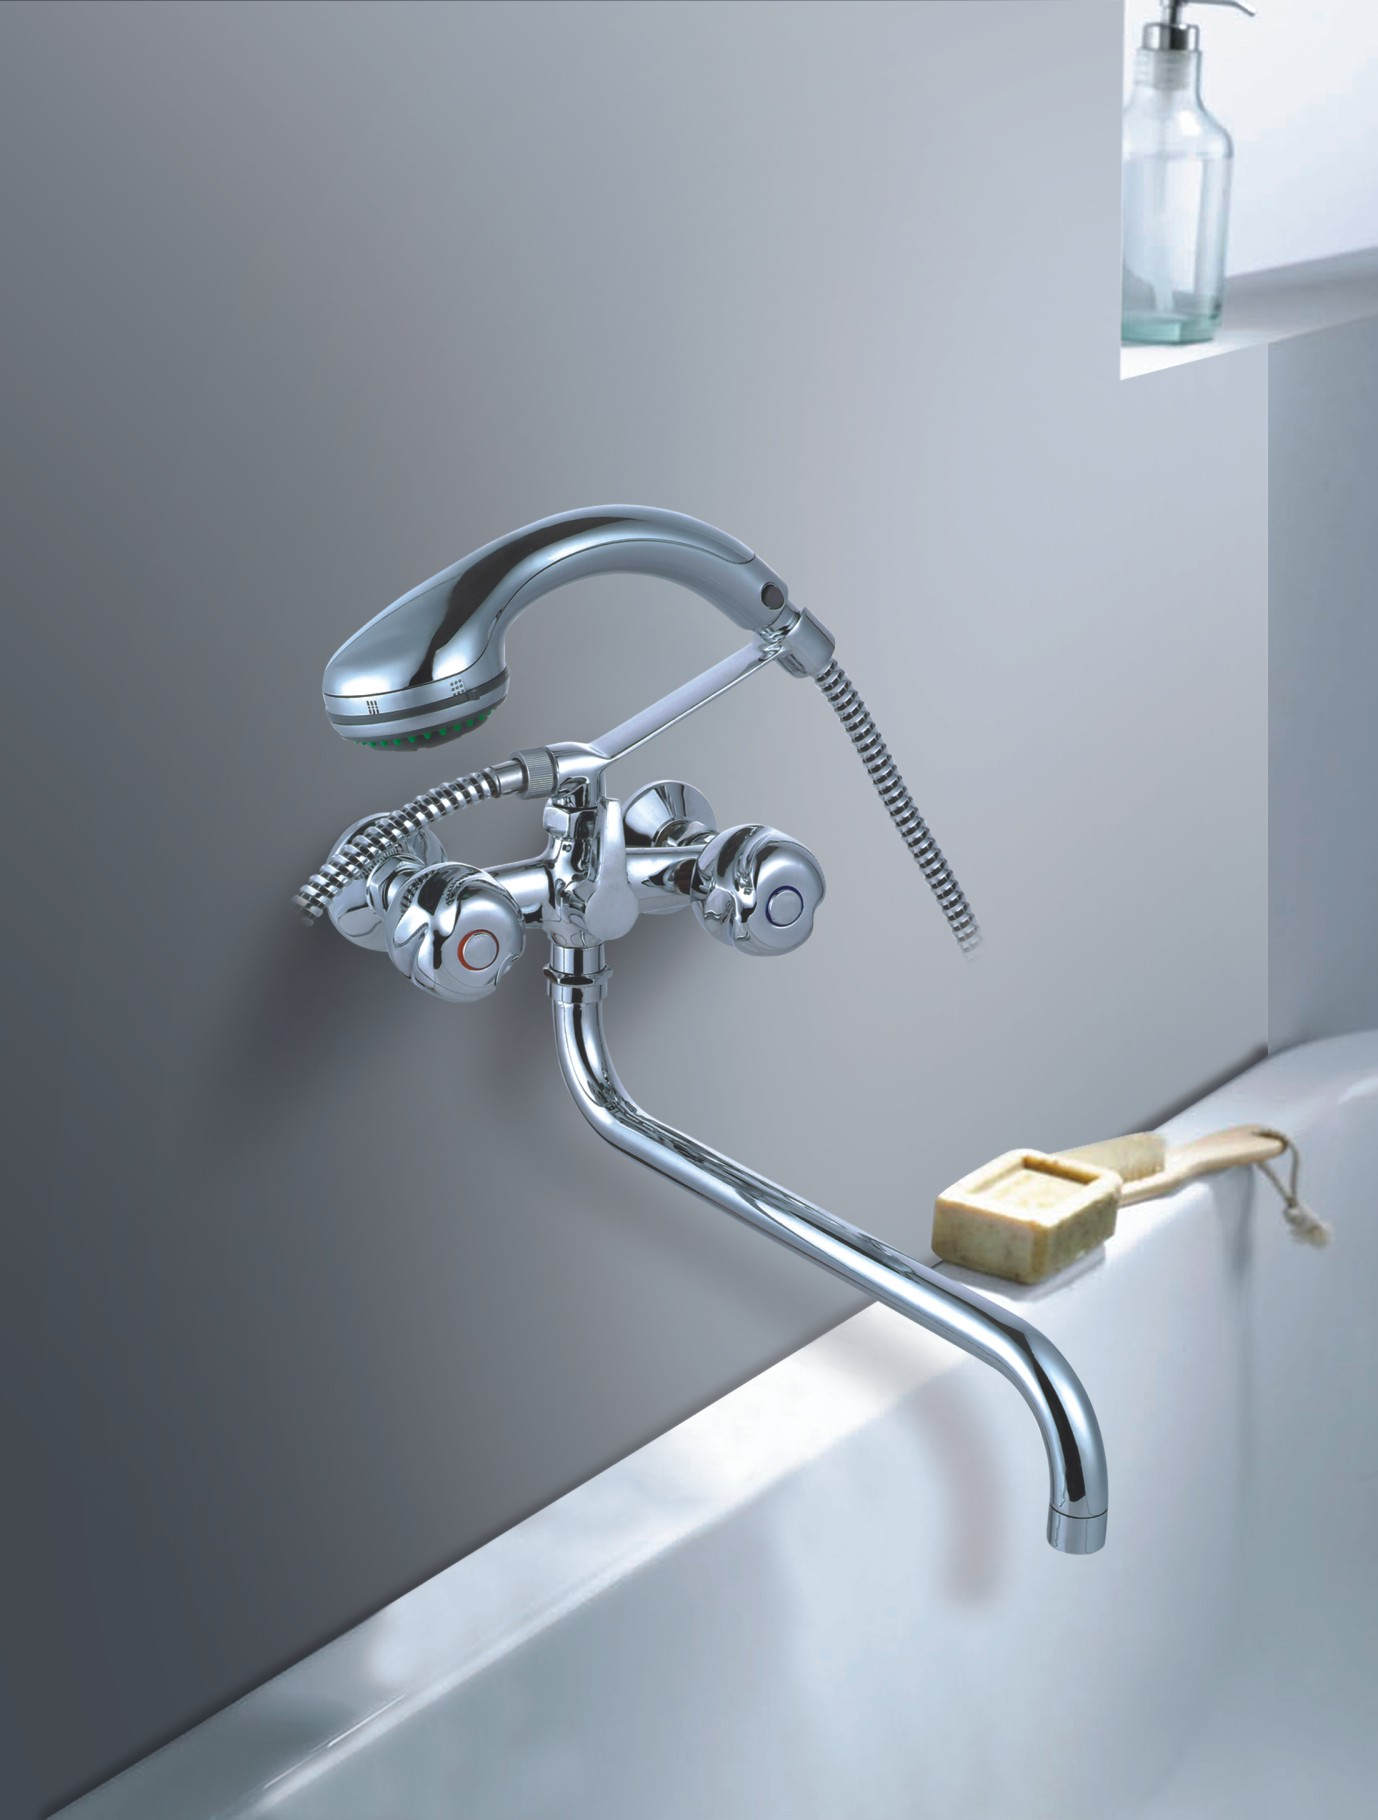 How high should the bathtub faucet generally be? Analysis of bathtub ...